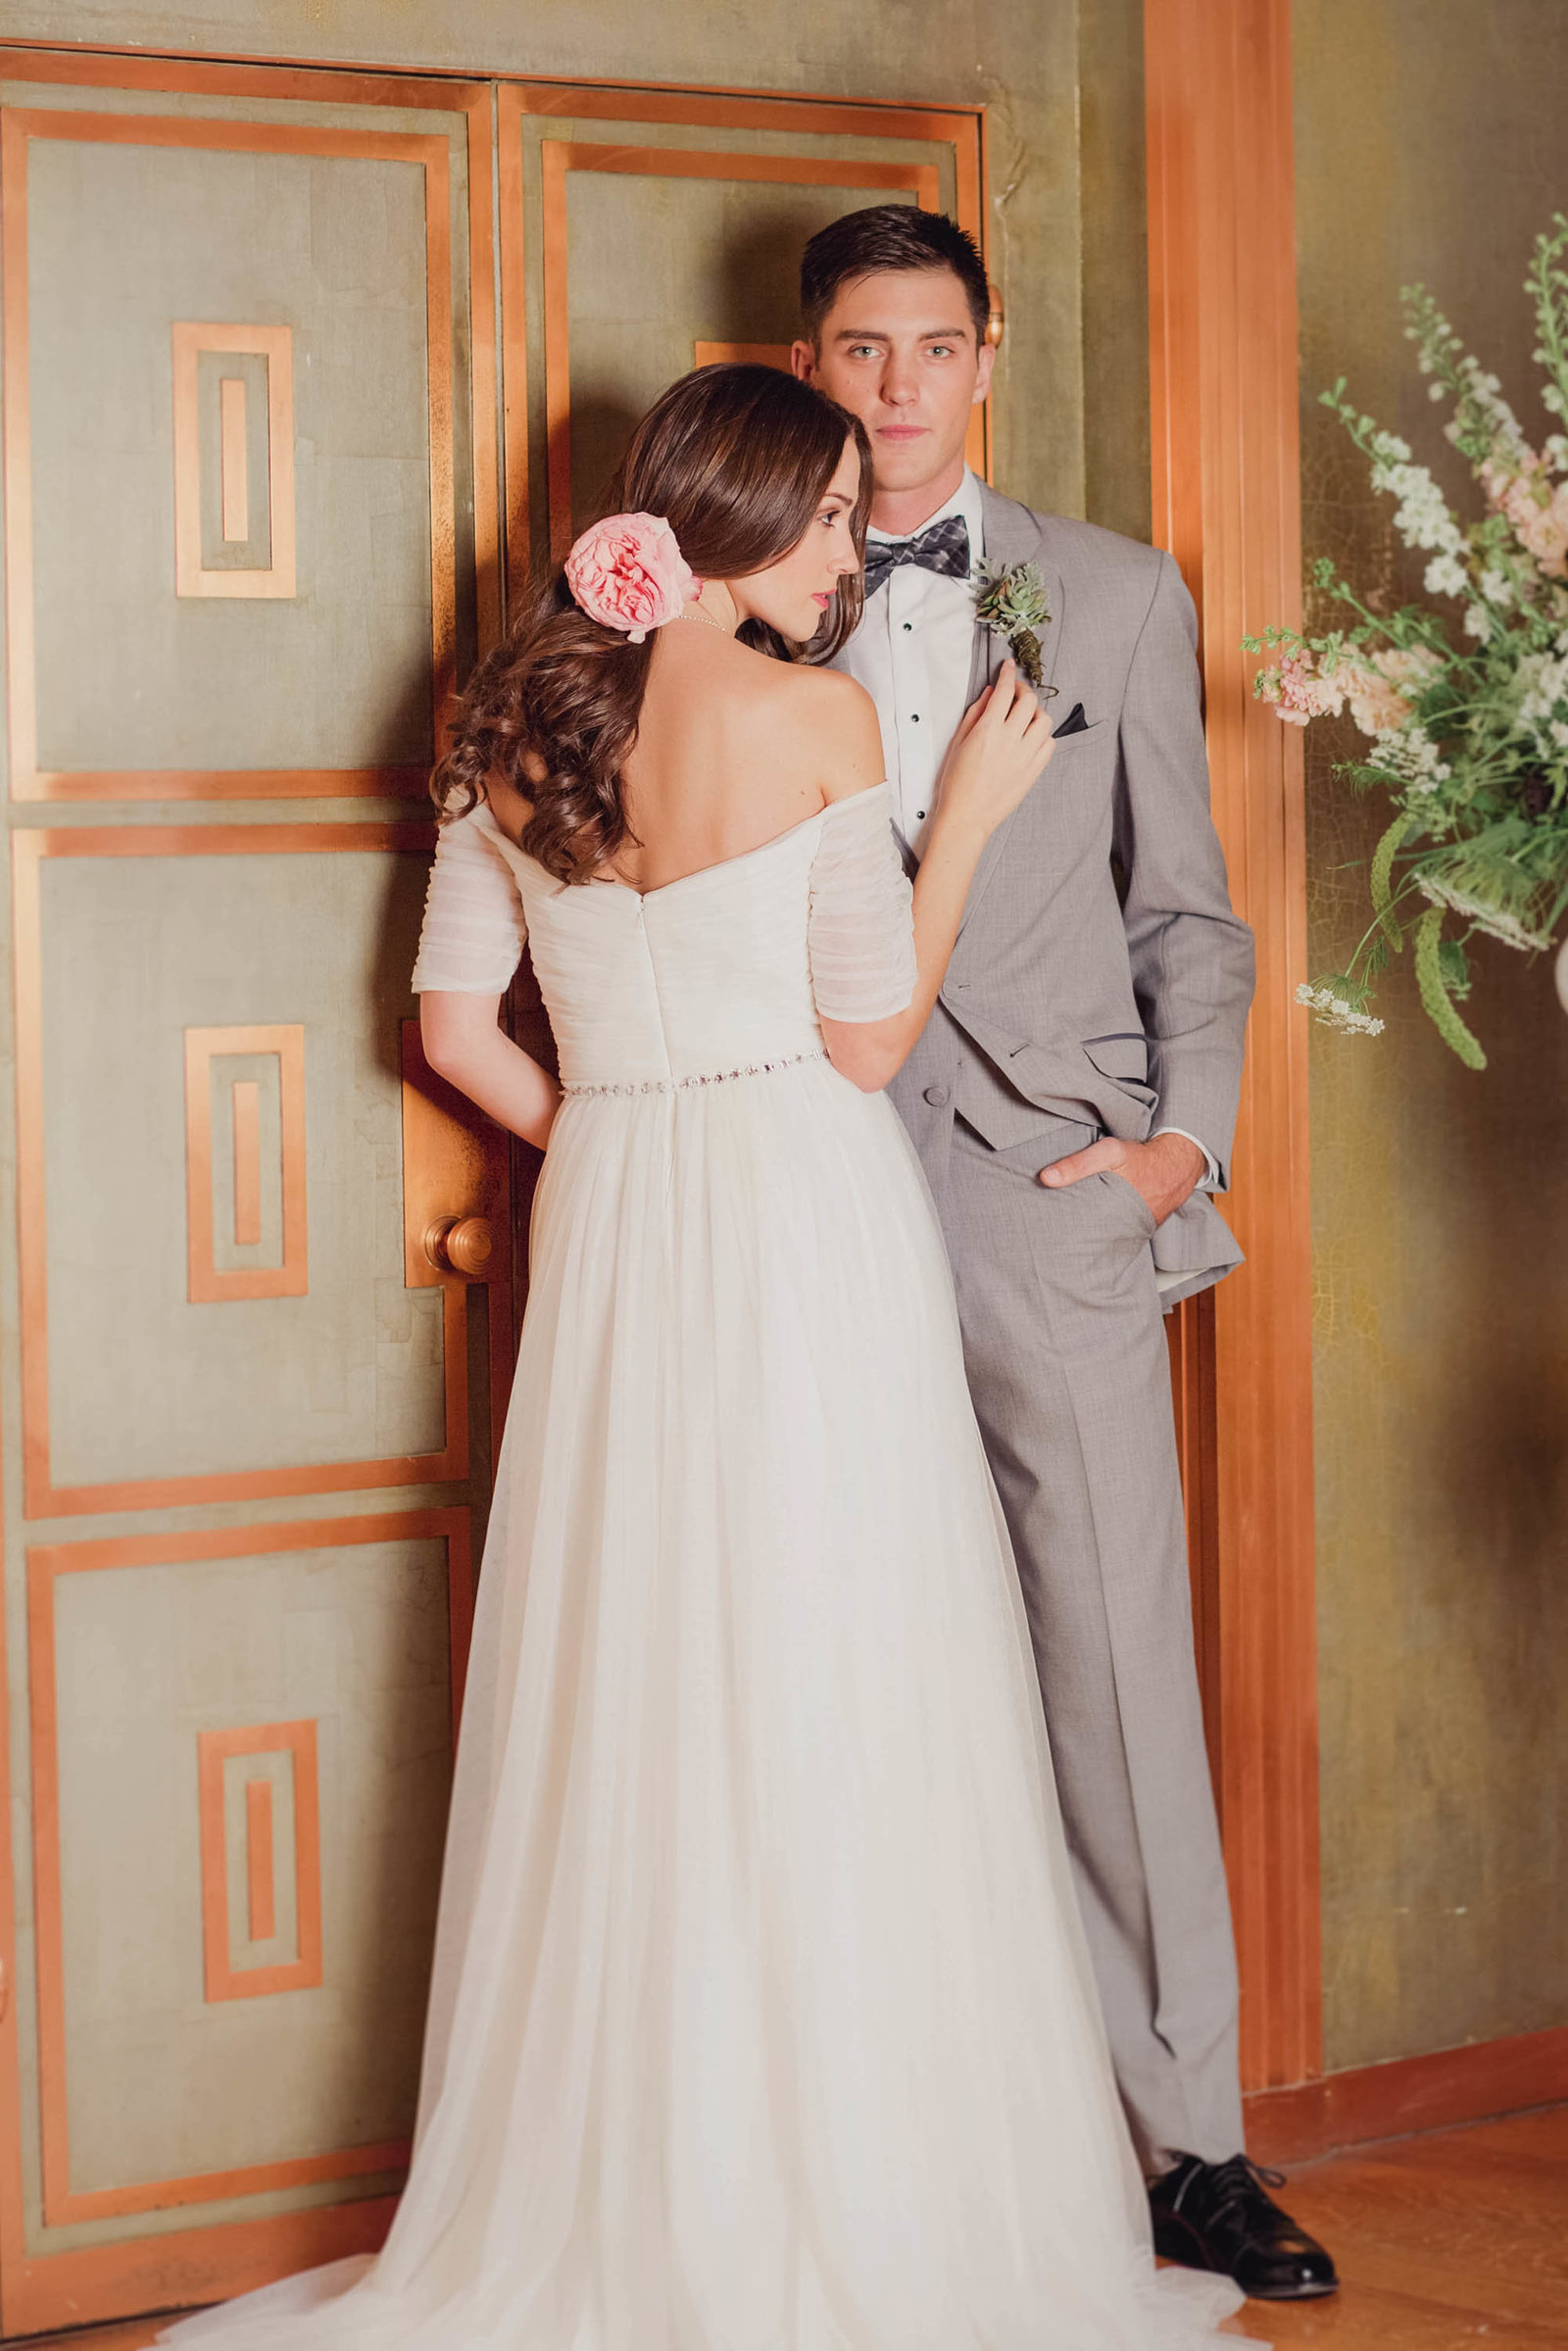 gold-room-bouquet-pink-purple-spring-bridal-lookbook-fashion-editorial-glamour-grace-blog-published-rosa-clara-francesca-miranda-jenny-packham-mma-agency-kate-timbers140